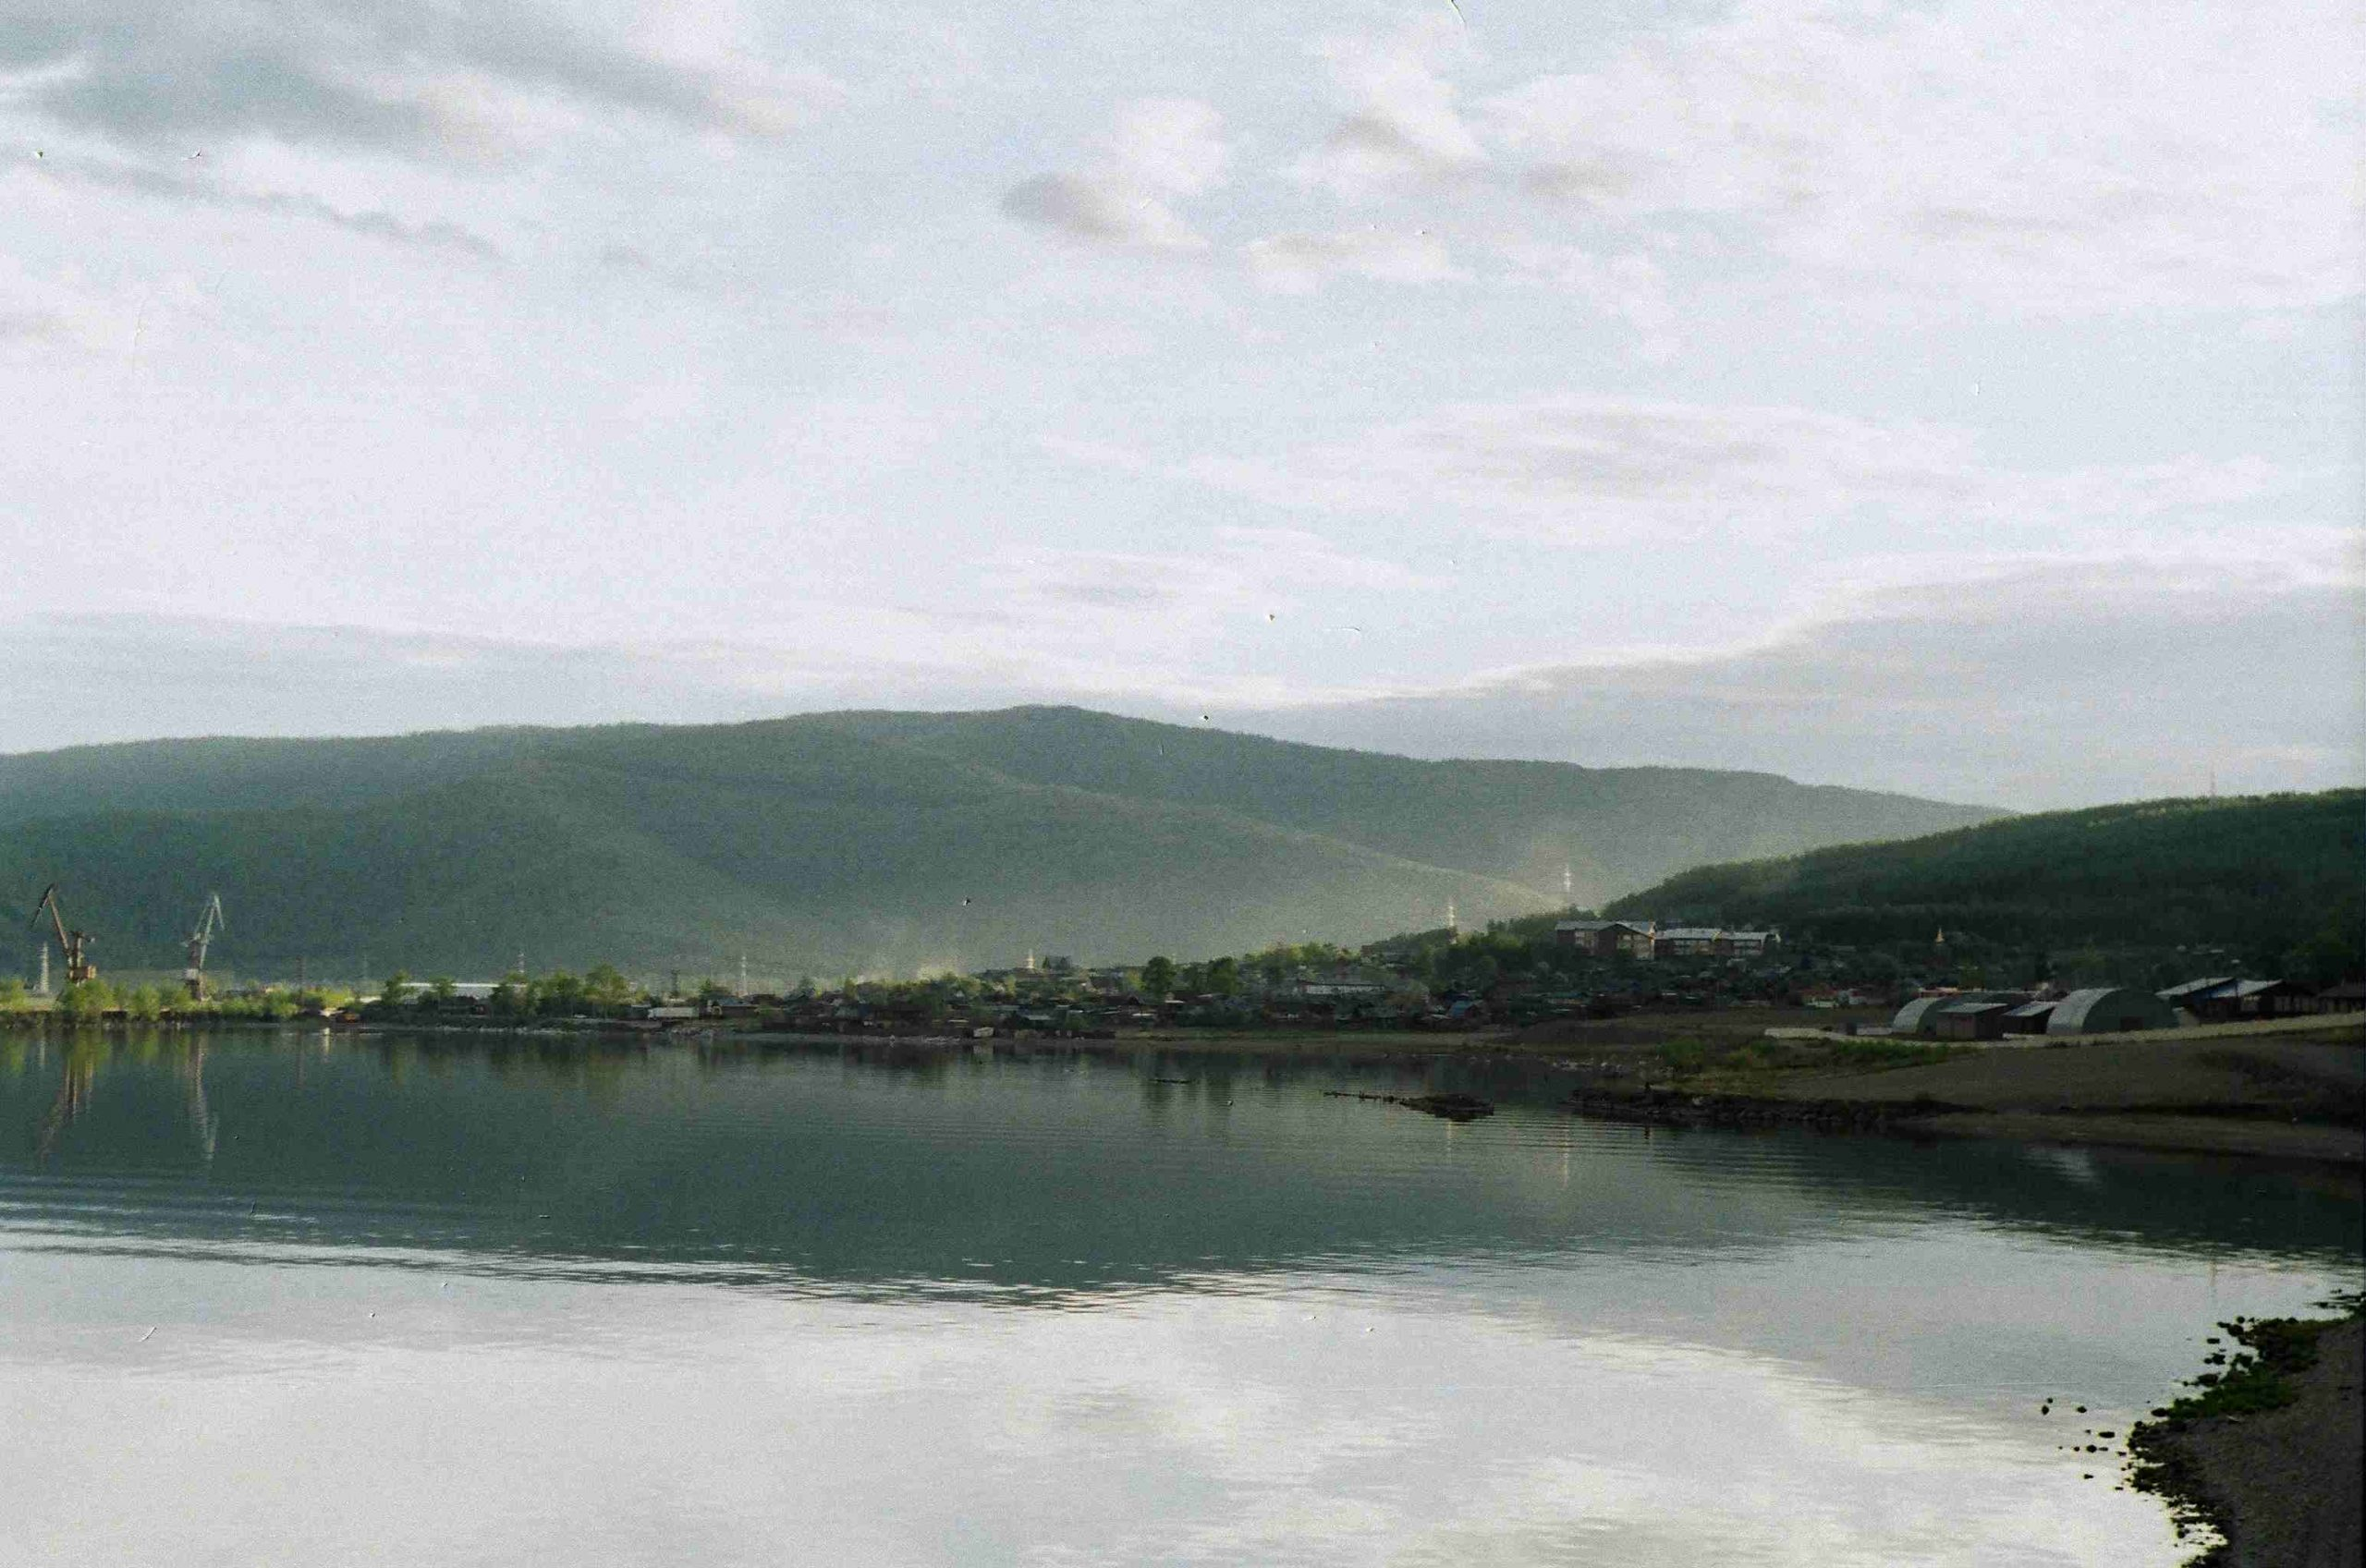 A landscape of the lake shore and the hills behind the lake shore. The water is still and reflects the hills. The sky is cloudy with some patches of blue.